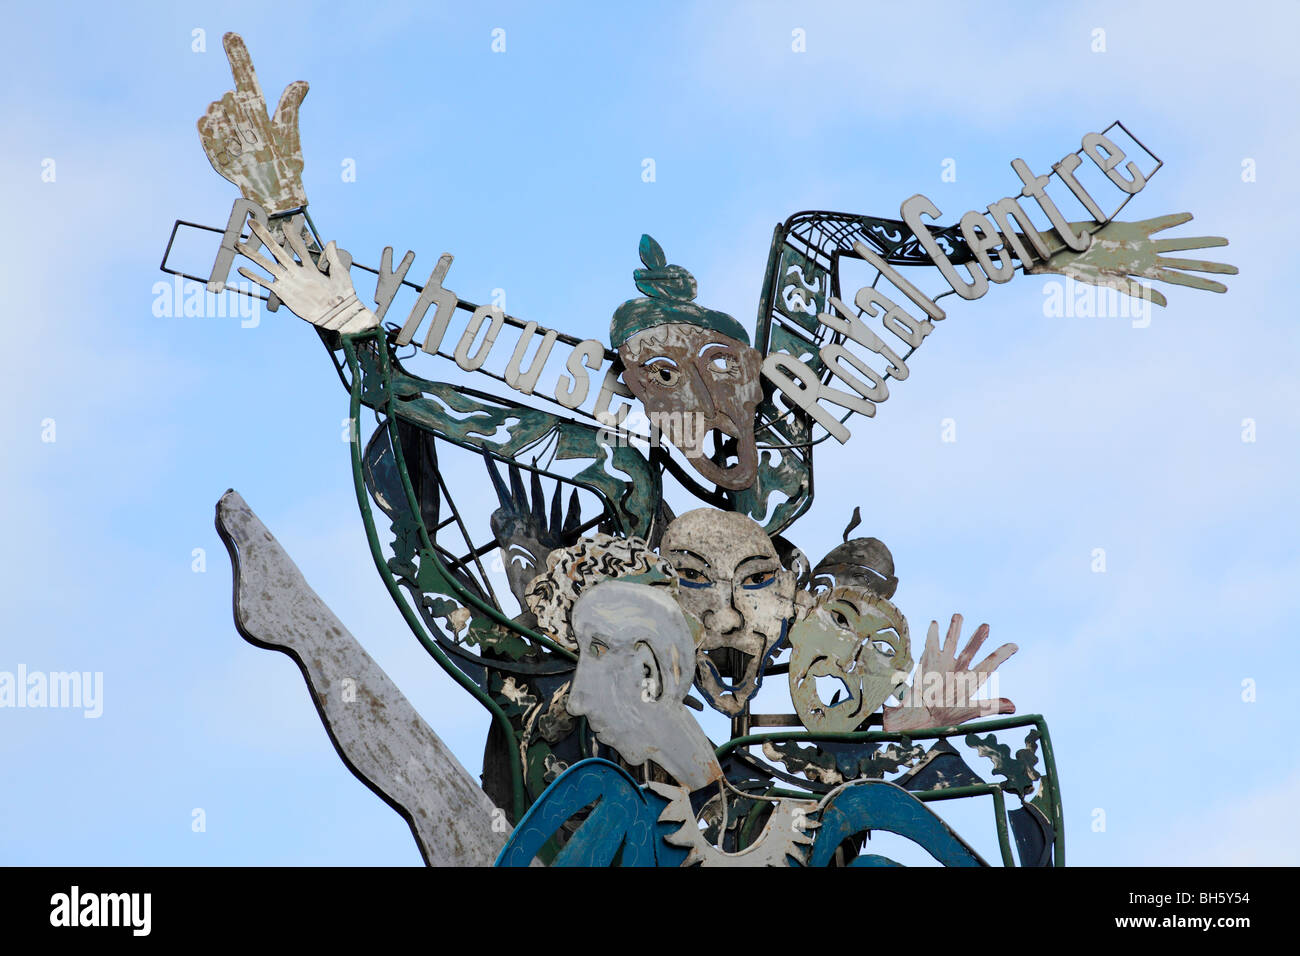 sculpture for the playhouse royal centre moved to maid marian way nottingham uk - Stock Image